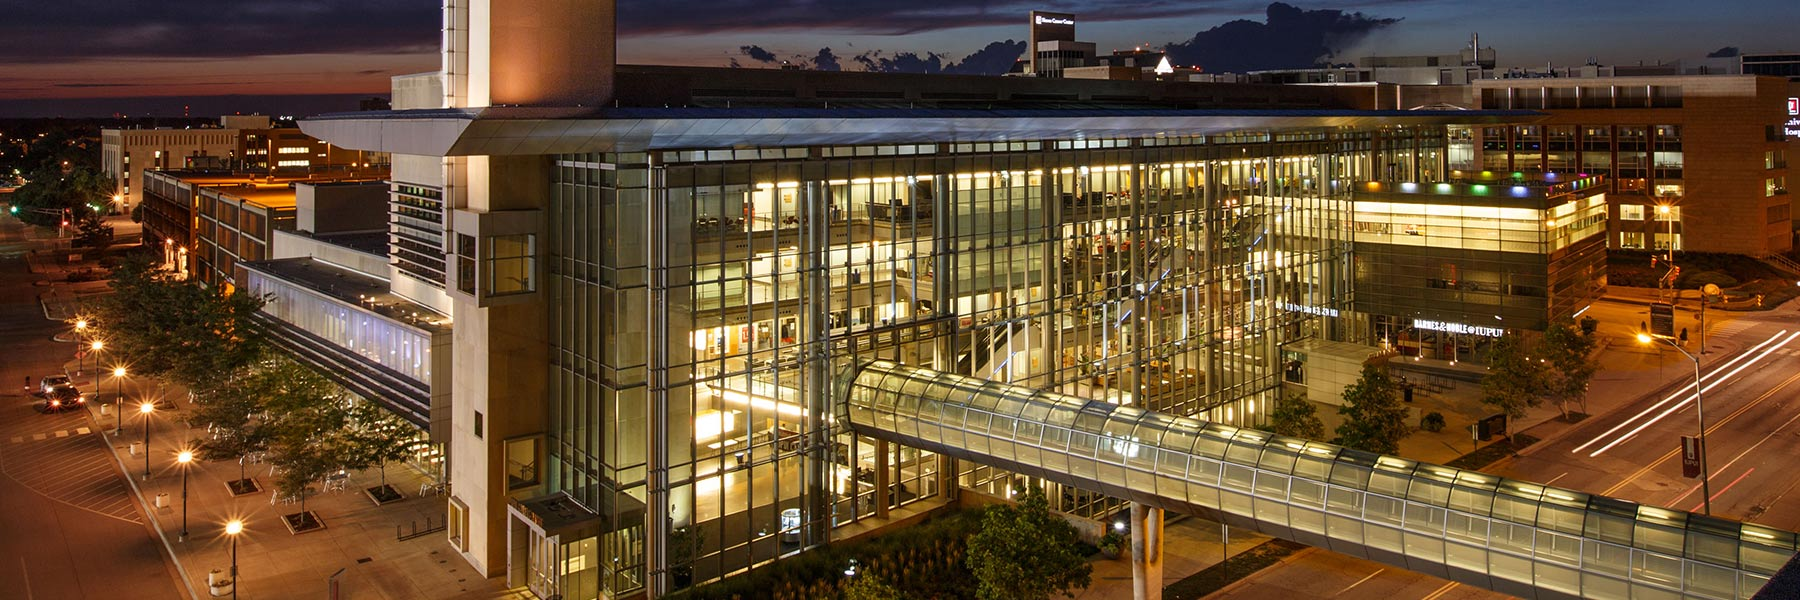 An aerial view of the IUPUI Campus Center at night